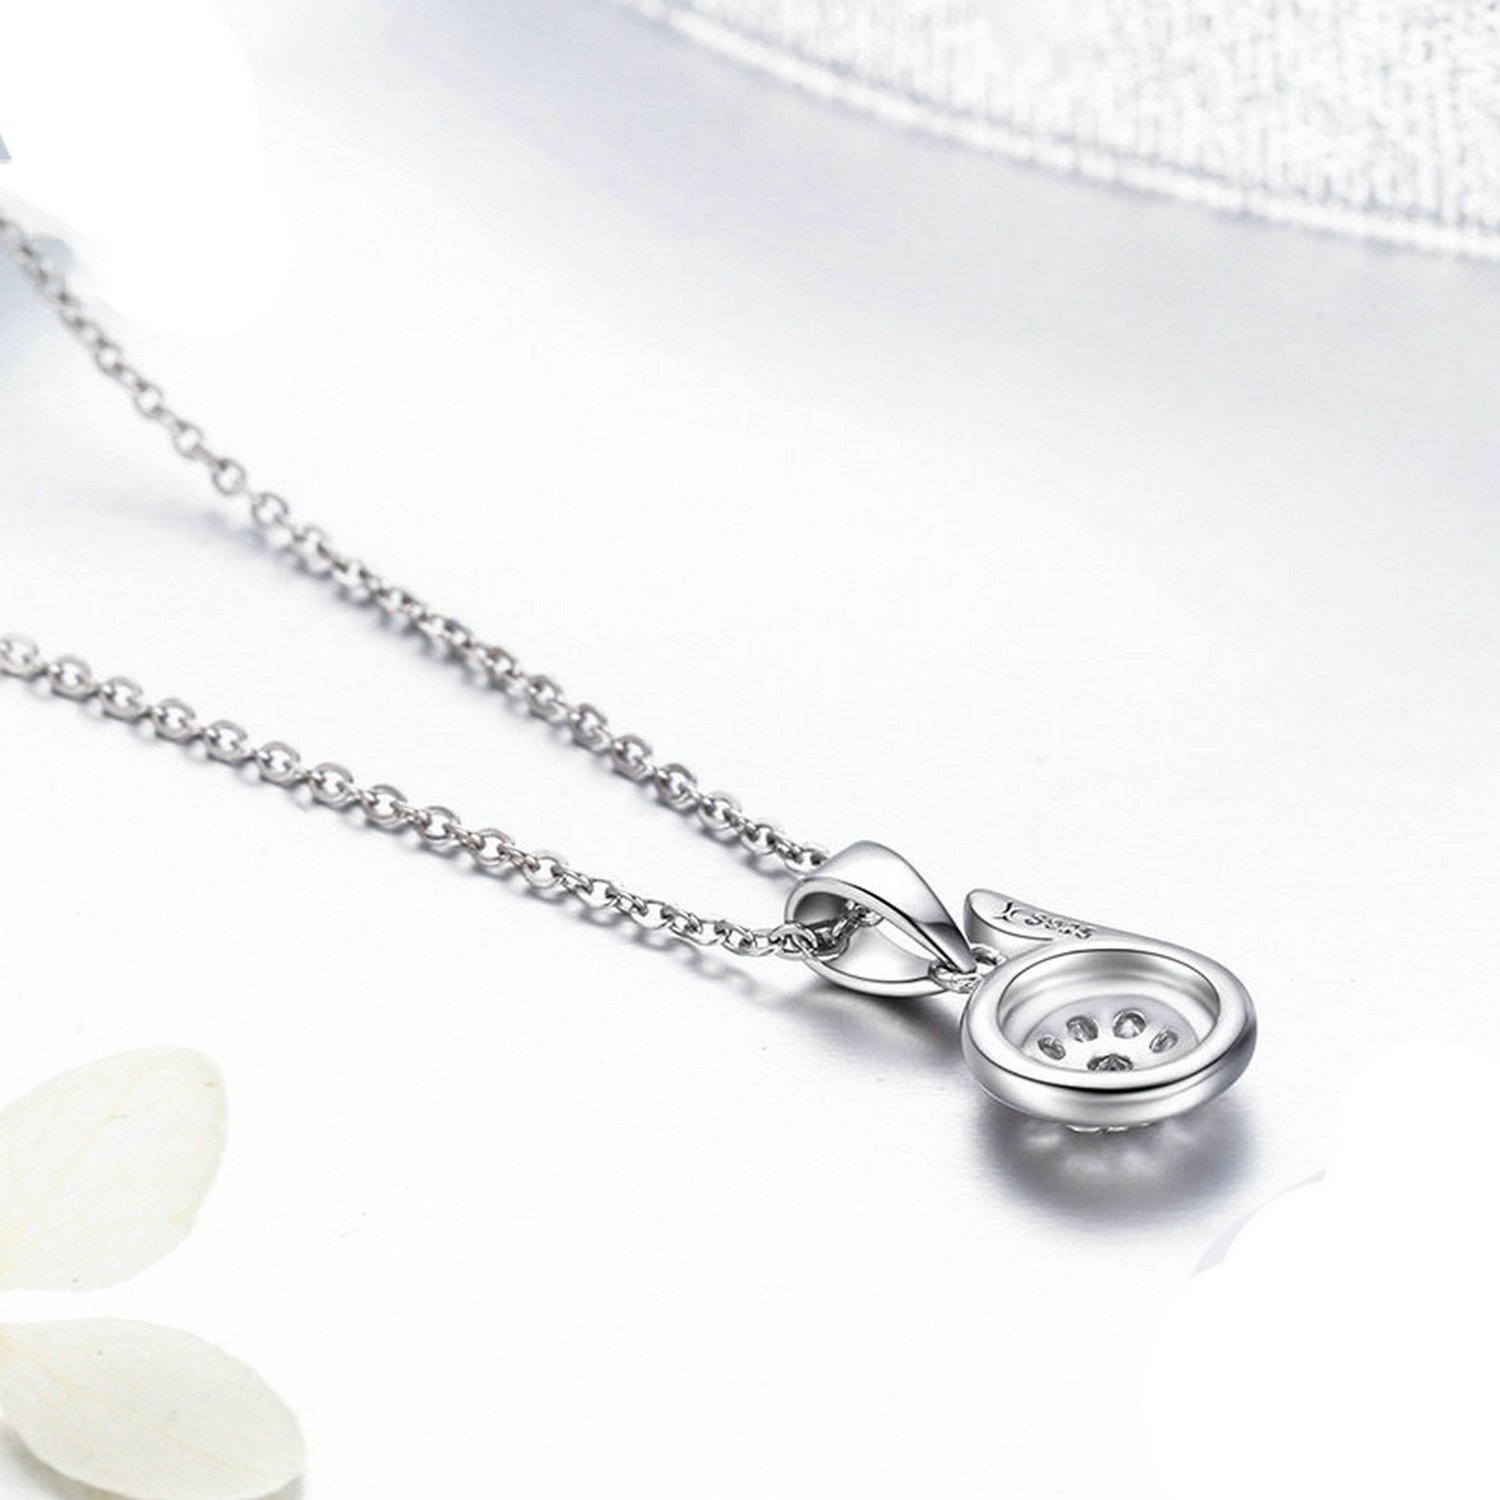 CS-DB Jewelry Silver Crystal Elegant Letter B Chain Charm Pendants Necklaces